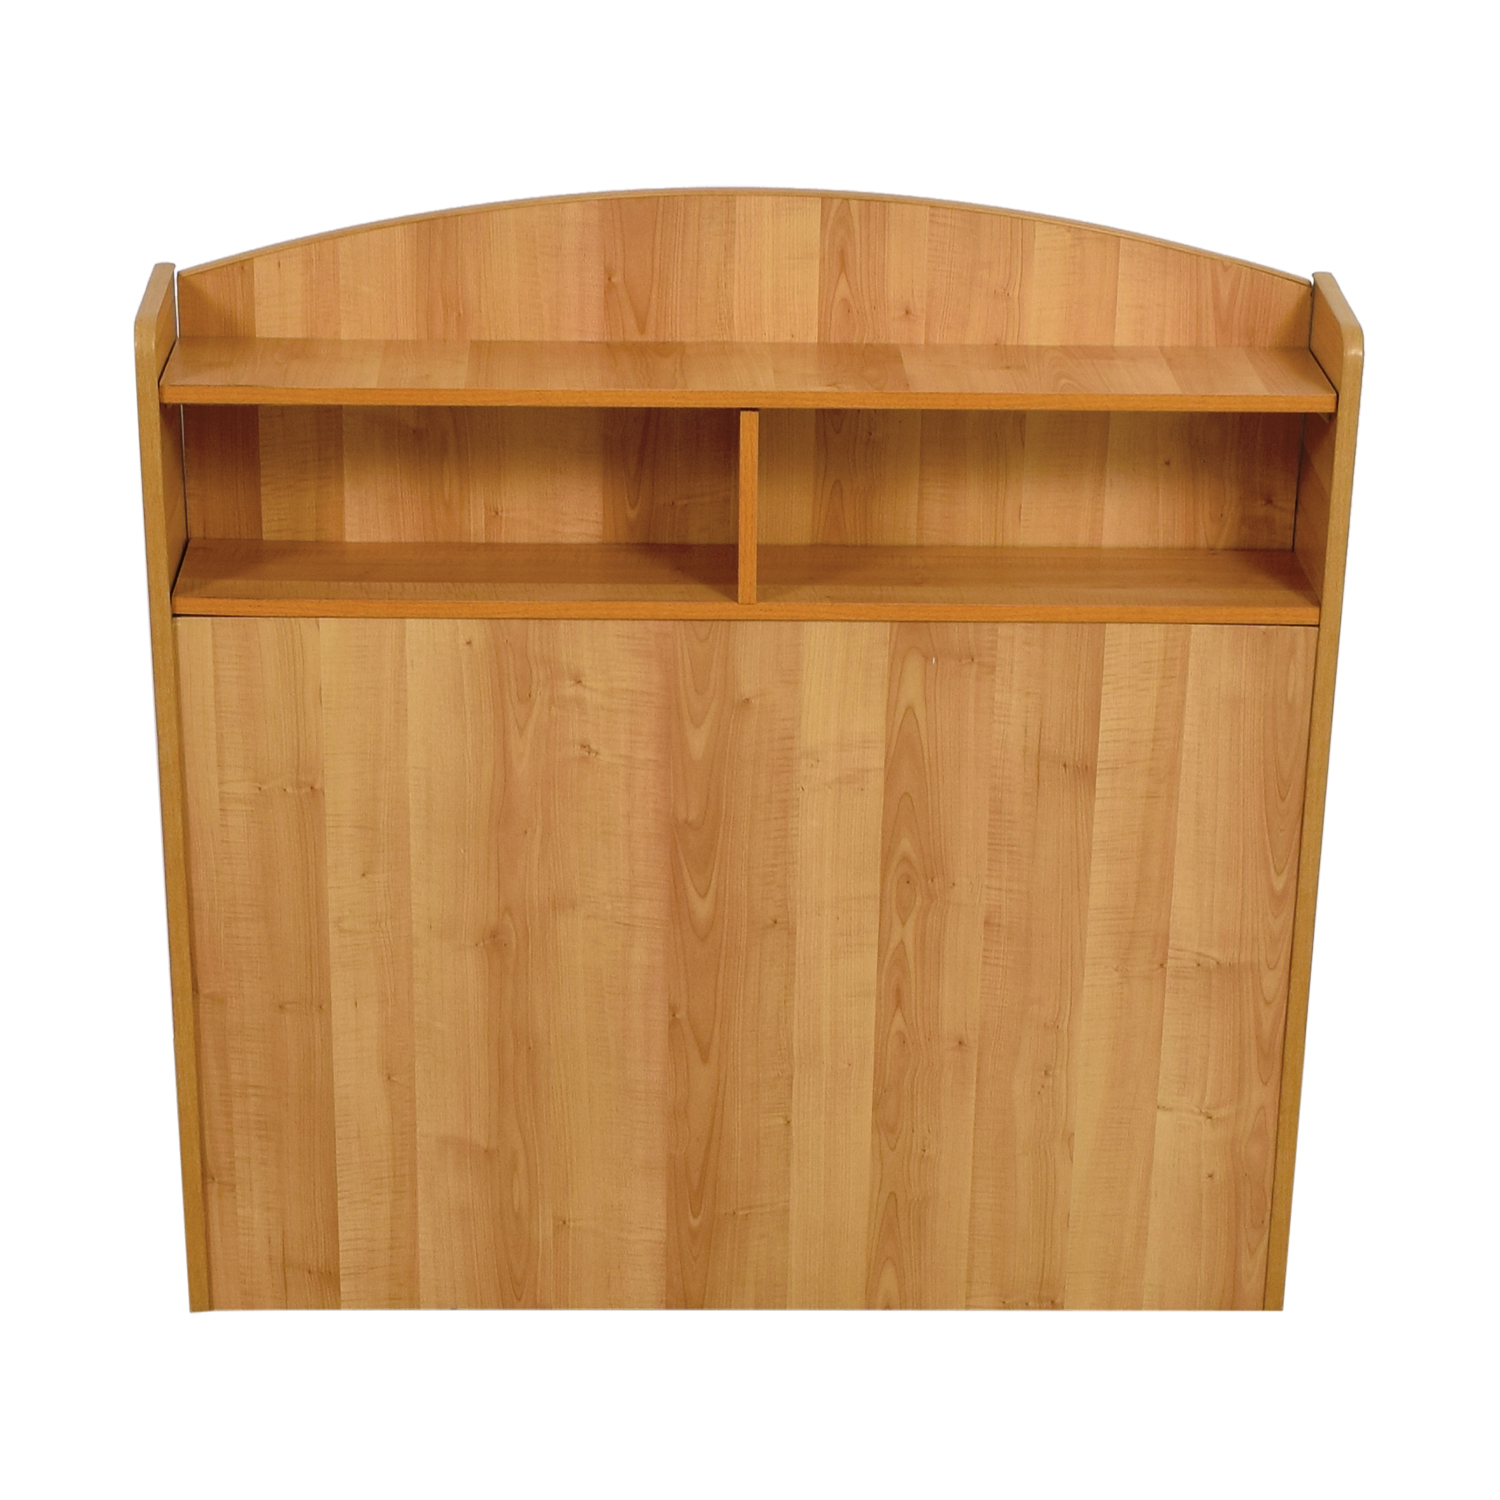 Captain Pine Wood Twin Headboard With Shelves